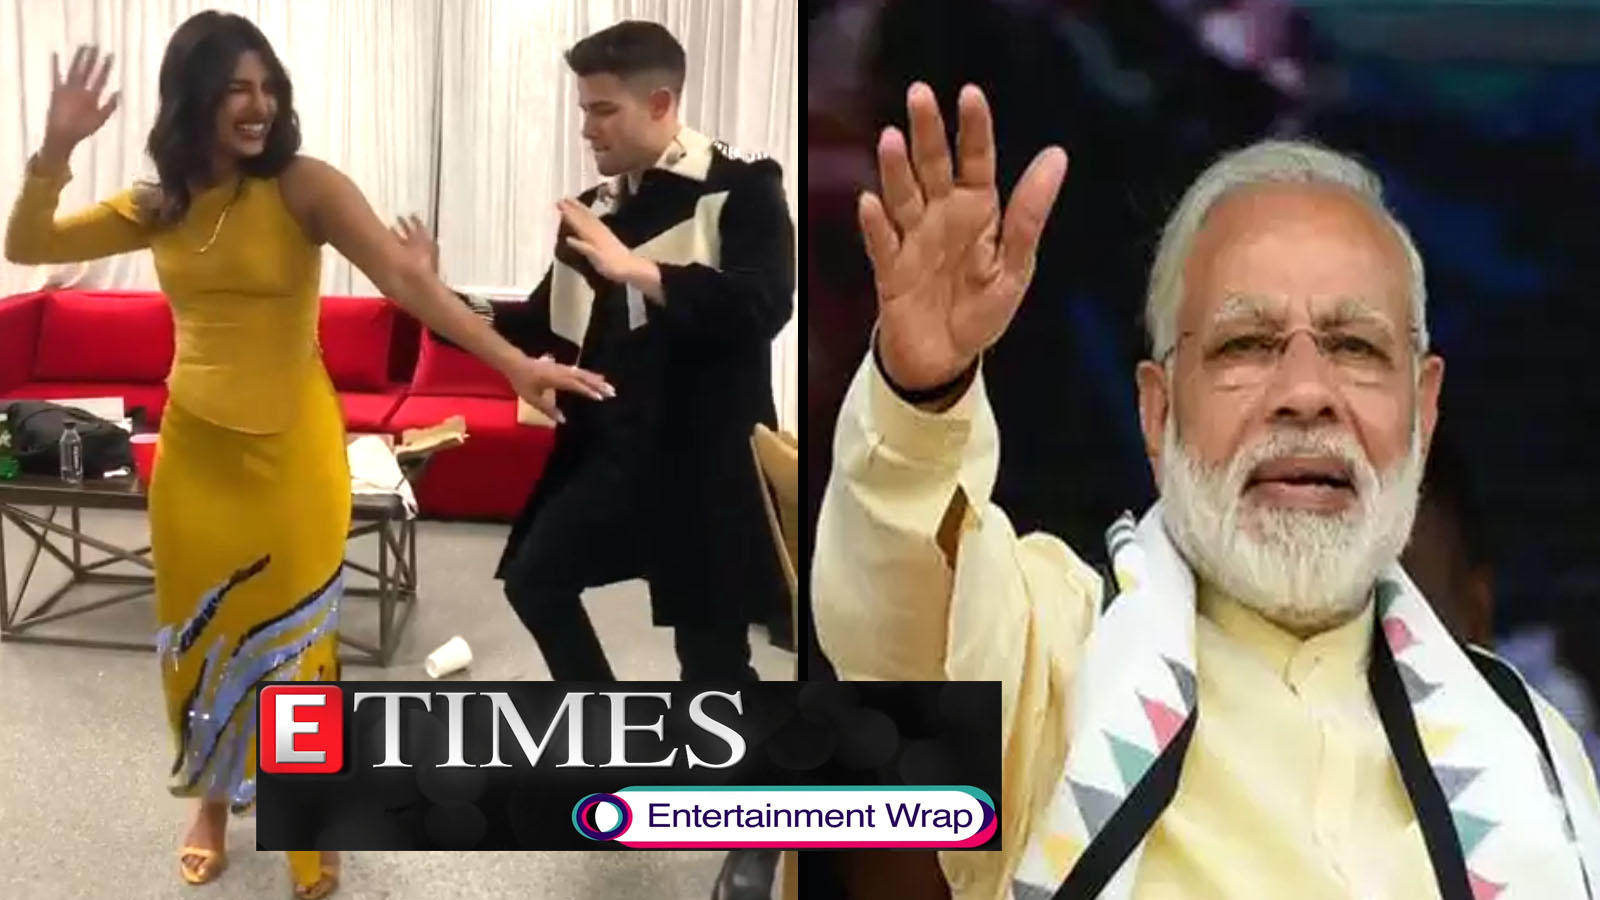 priyanka-chopra-and-nick-jonas-dance-to-bollywood-song-celebs-wish-pm-narendra-modi-on-his-69th-birthday-and-more